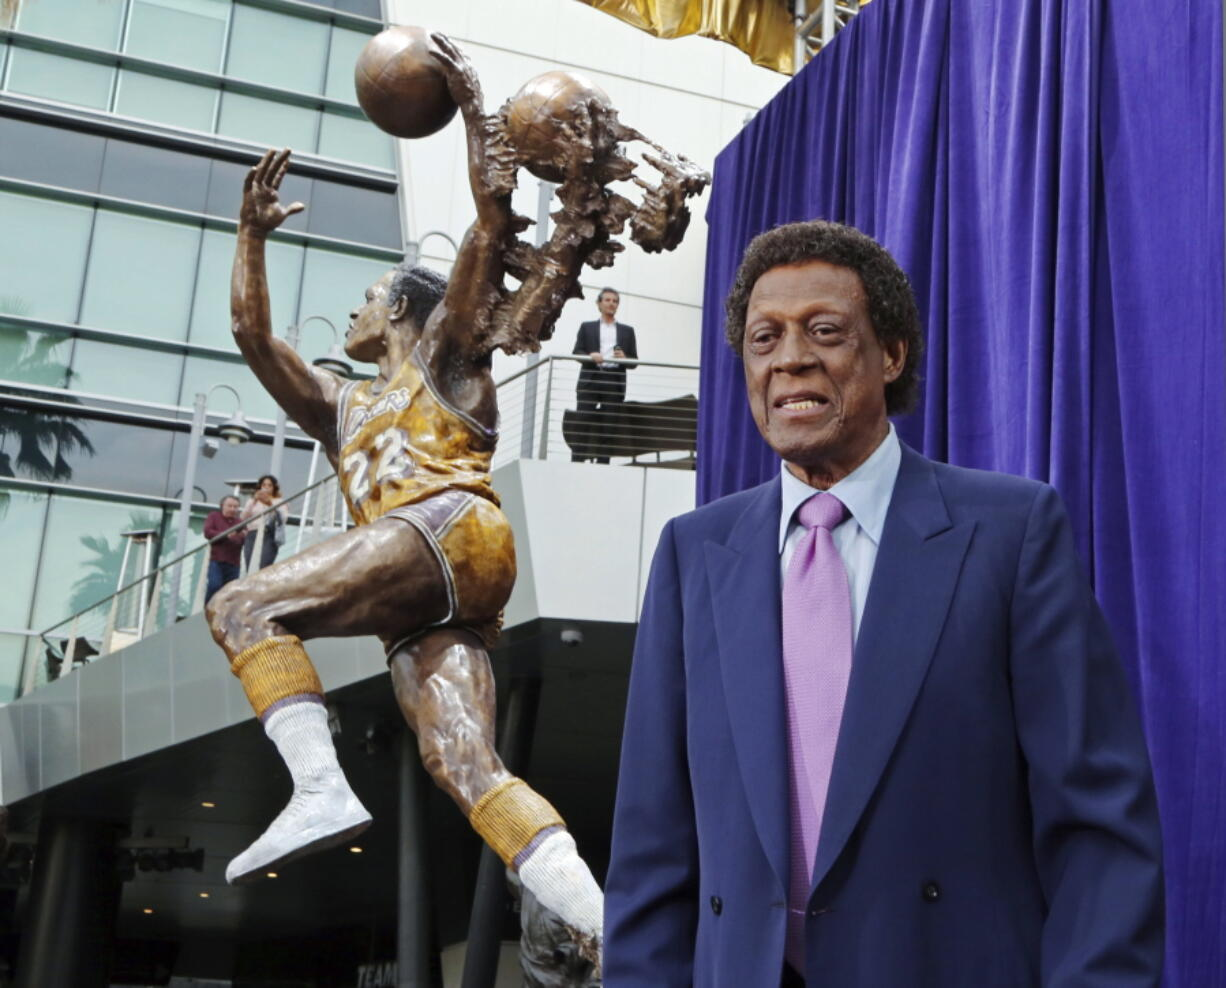 FILE - Elgin Baylor stands next to a statue, just unveiled, honoring the Minneapolis and Los Angeles Lakers great, outside Staples Center in Los Angeles, in this Friday, April 6, 2018, file photo. Elgin Baylor, the Lakers' 11-time NBA All-Star, died Monday, March 22, 2021, of natural causes. He was 86. The Lakers announced that Baylor died in Los Angeles with his wife, Elaine, and daughter Krystal by his side.